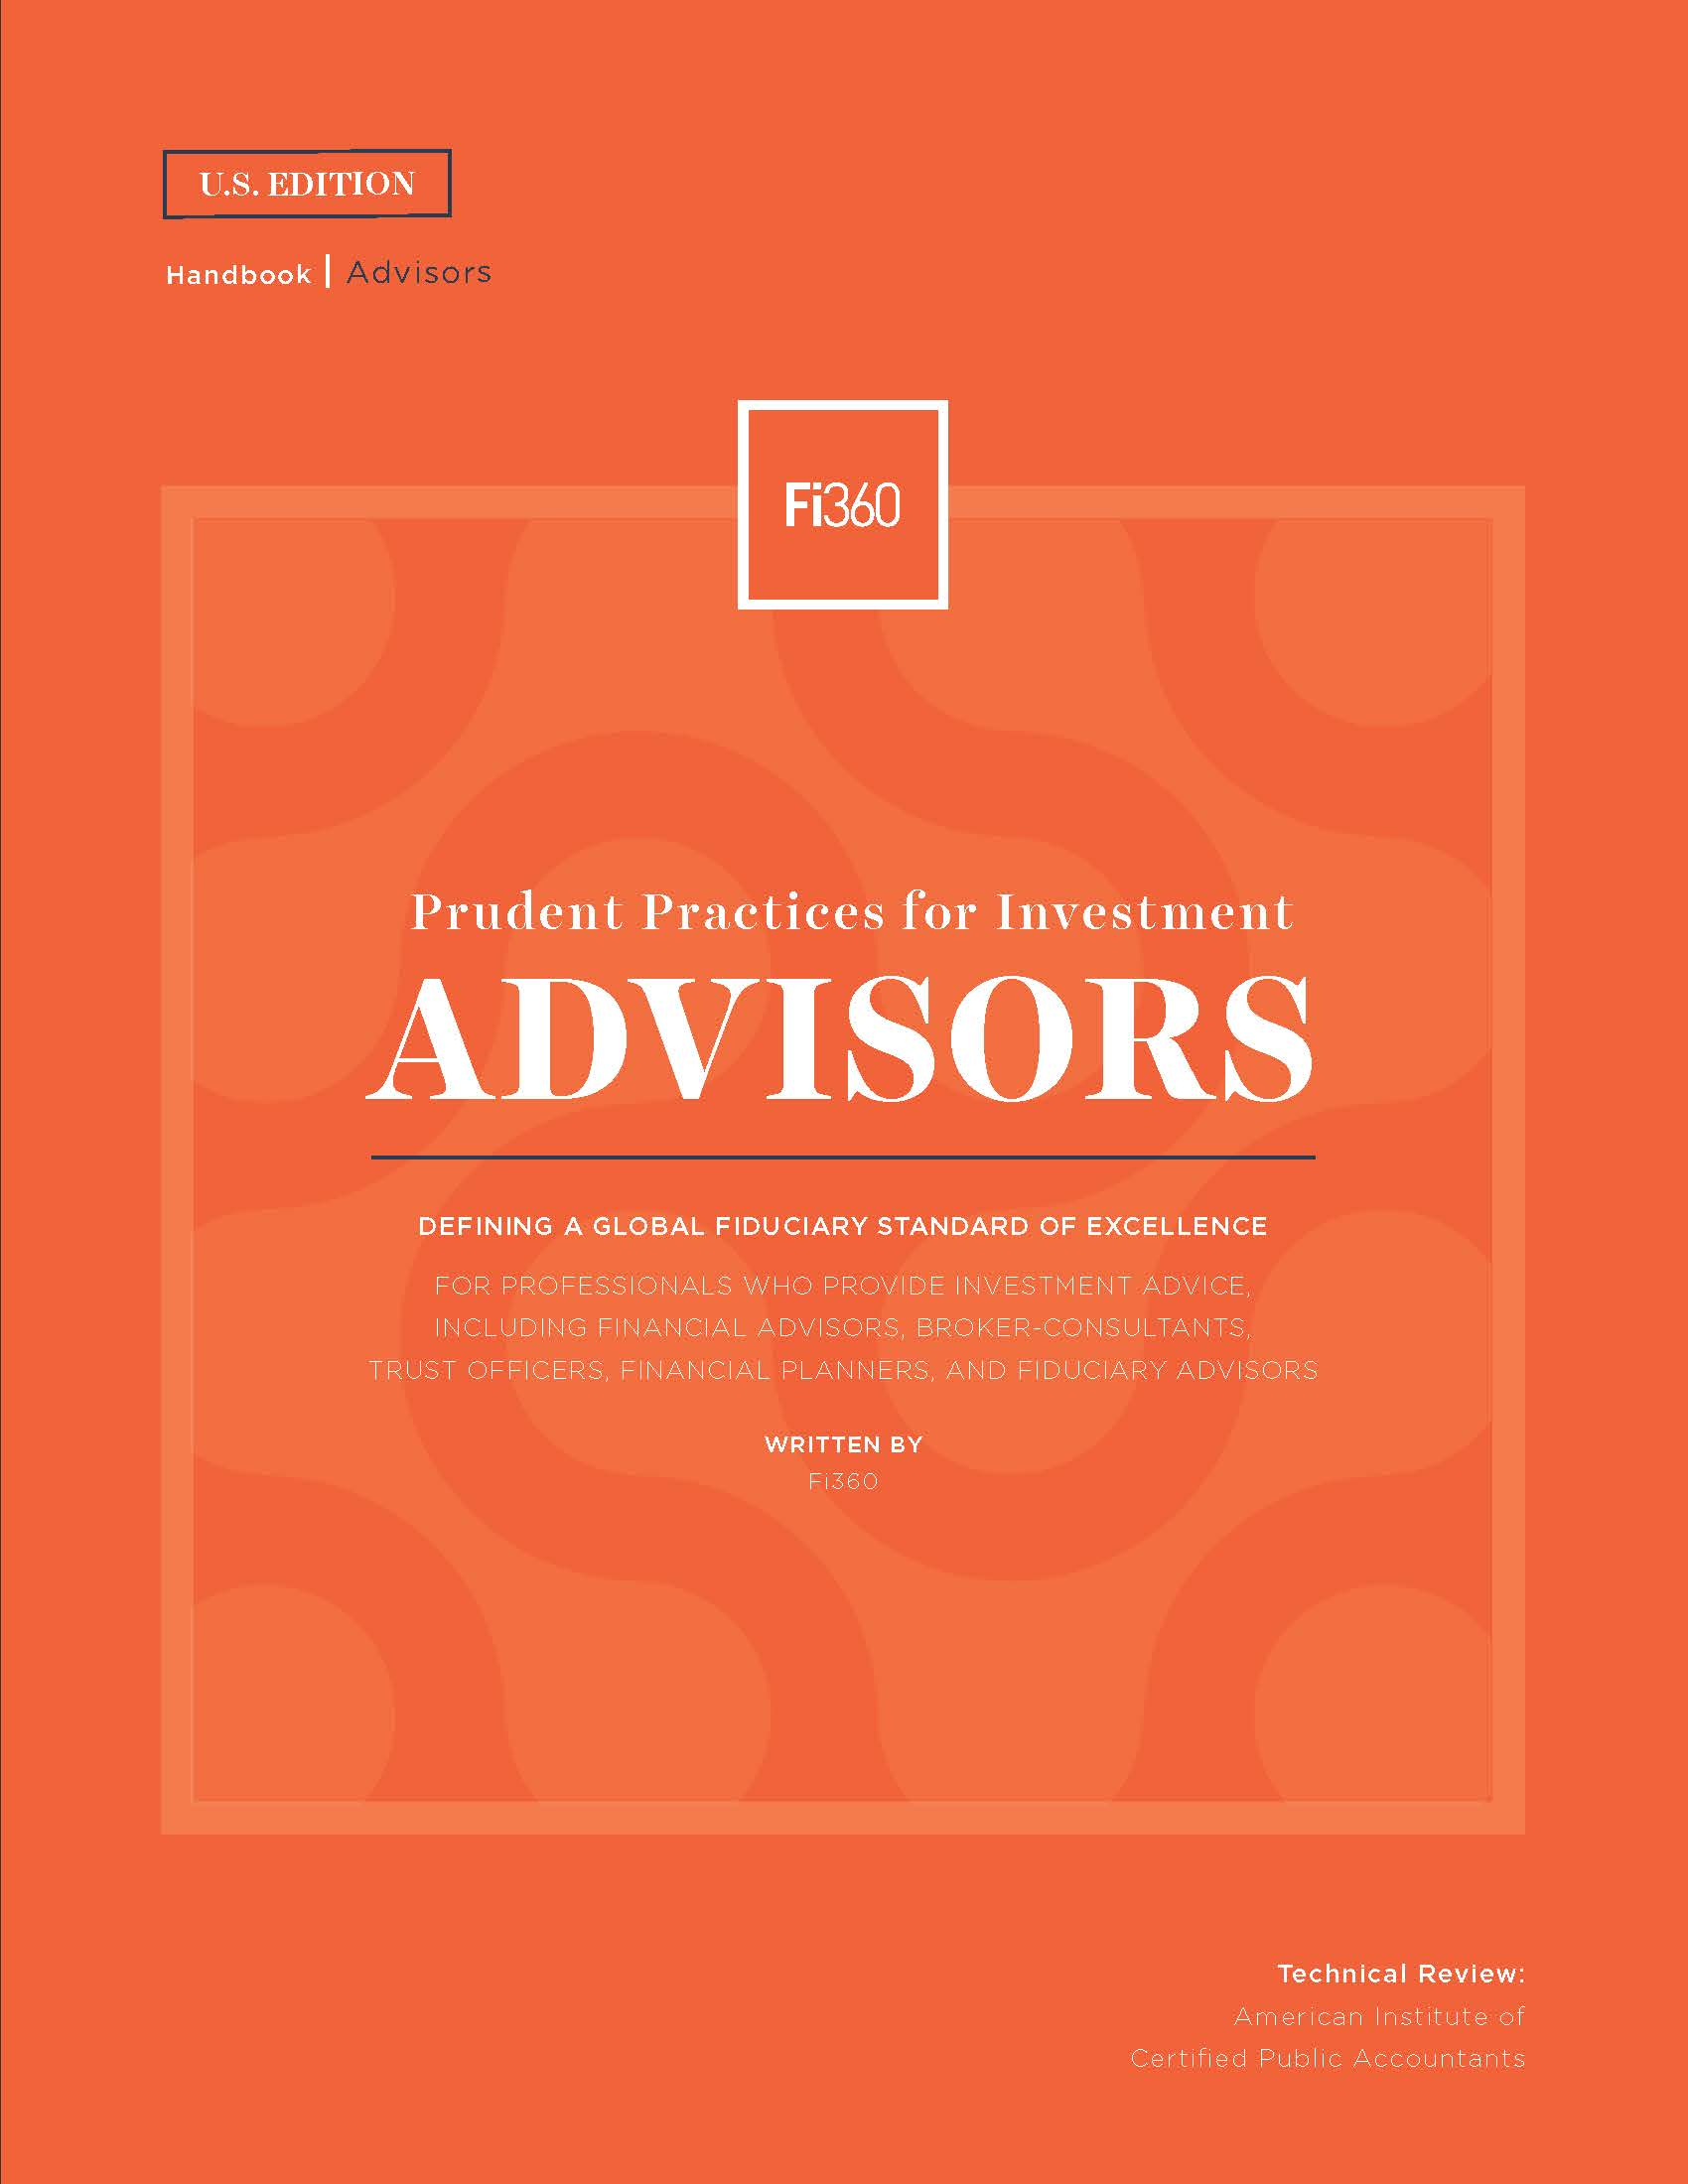 Prudent Practices for Investment Advisors